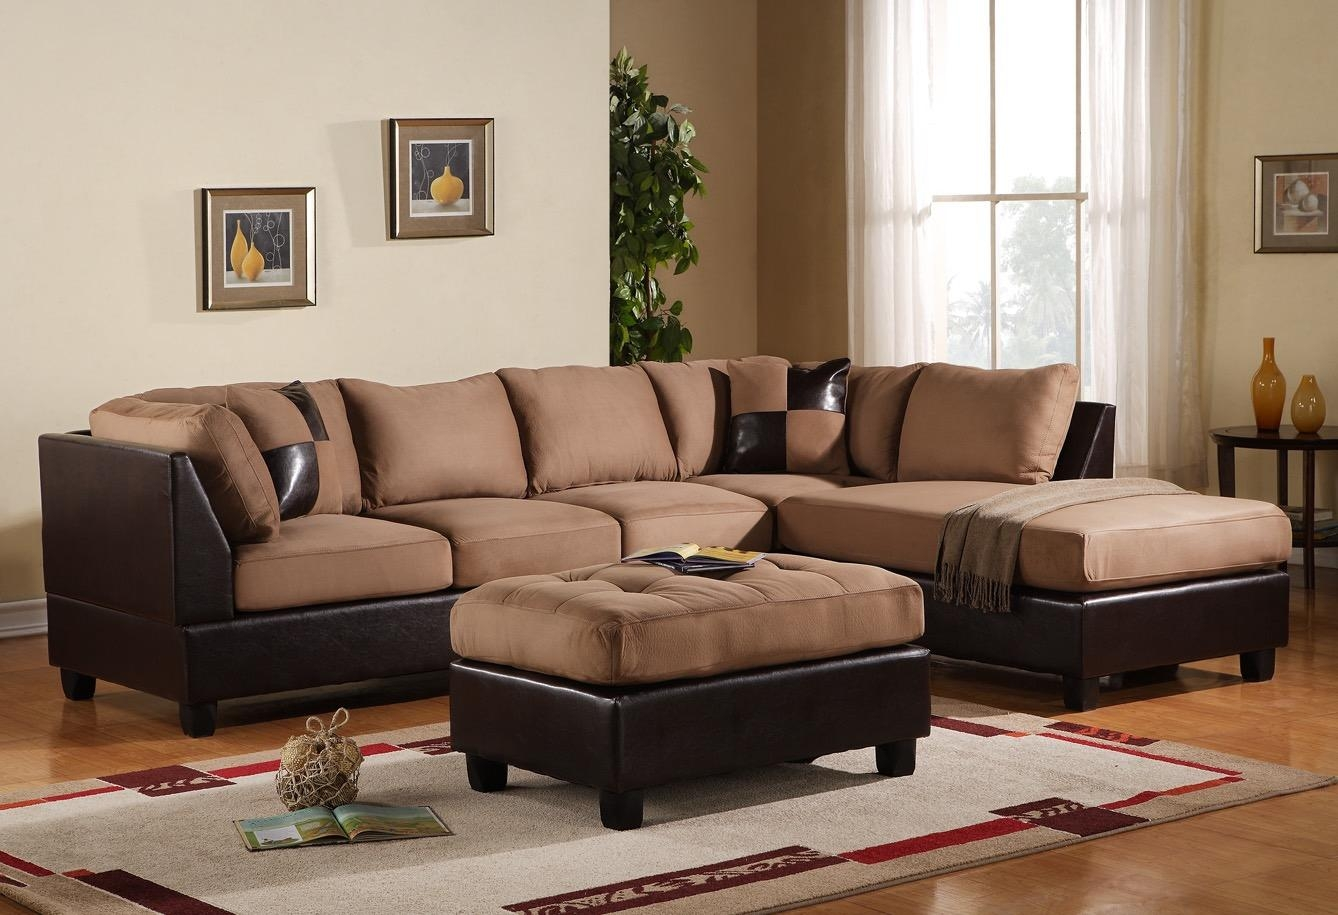 Unusual Inspiration Ideas 10 Brown Sofa Decorating Living Room within Brown Sofas Decorating